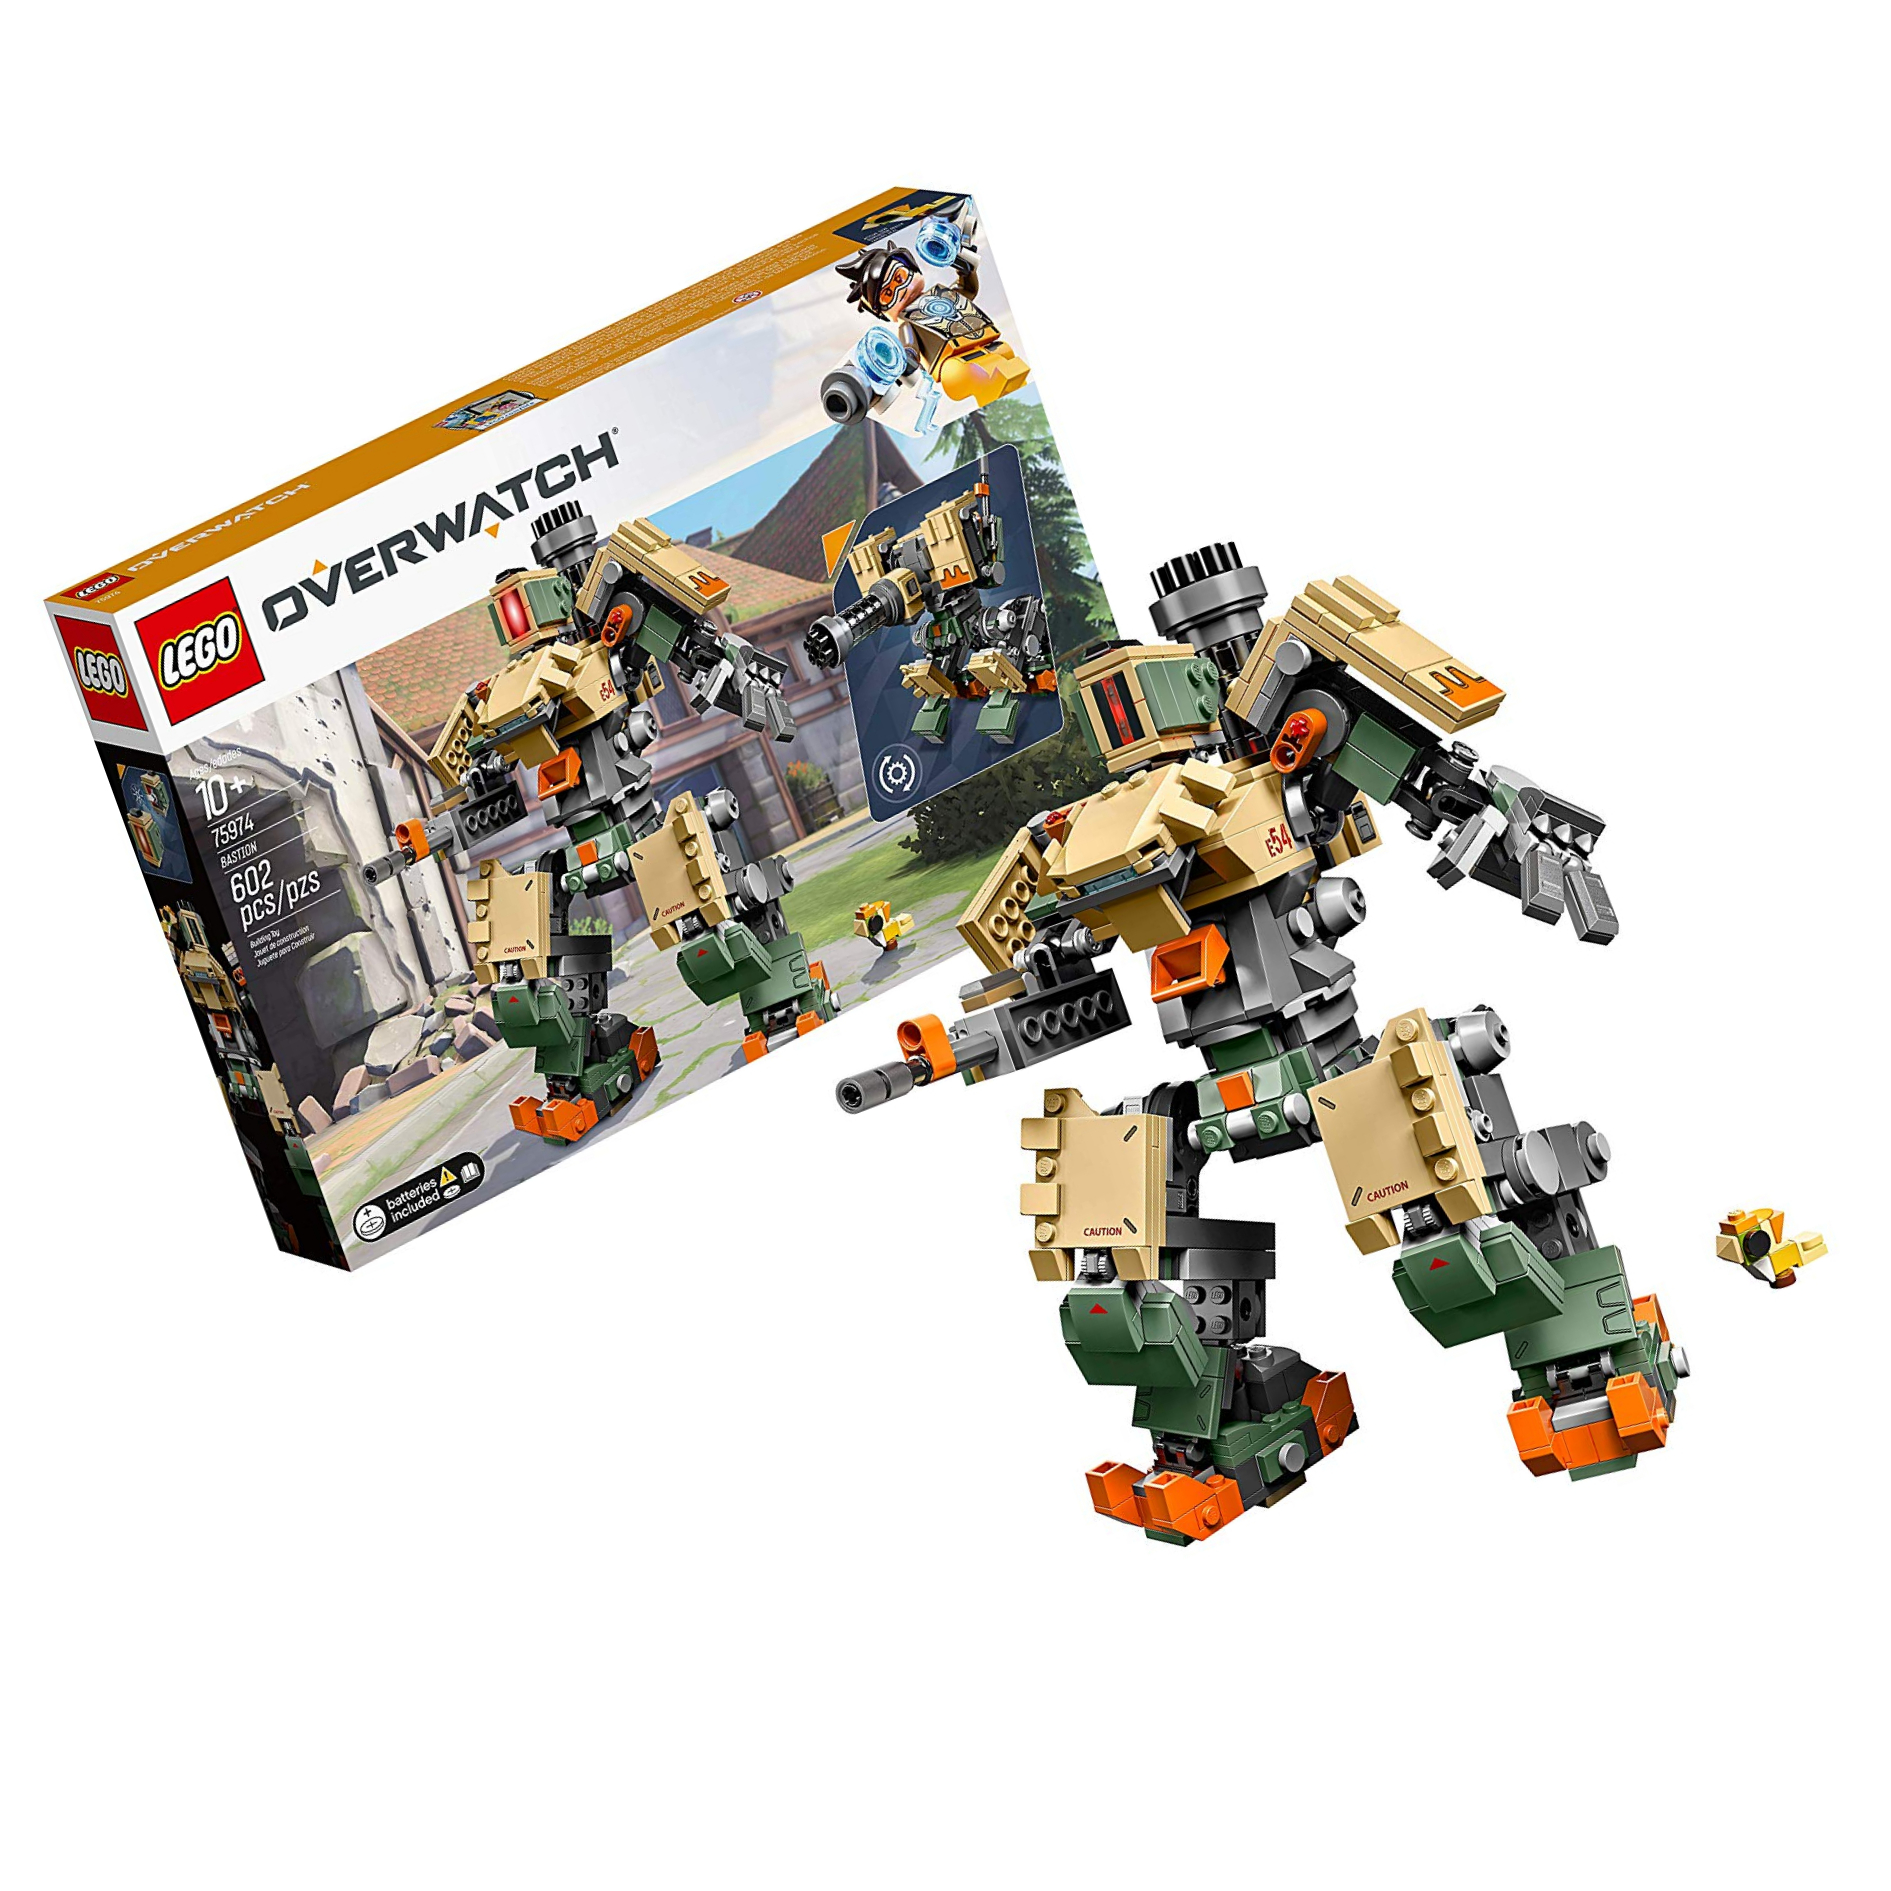 75974 BASTION lego NEW legos set OVERWATCH Ganymede ROBOT mech recon sentry mode